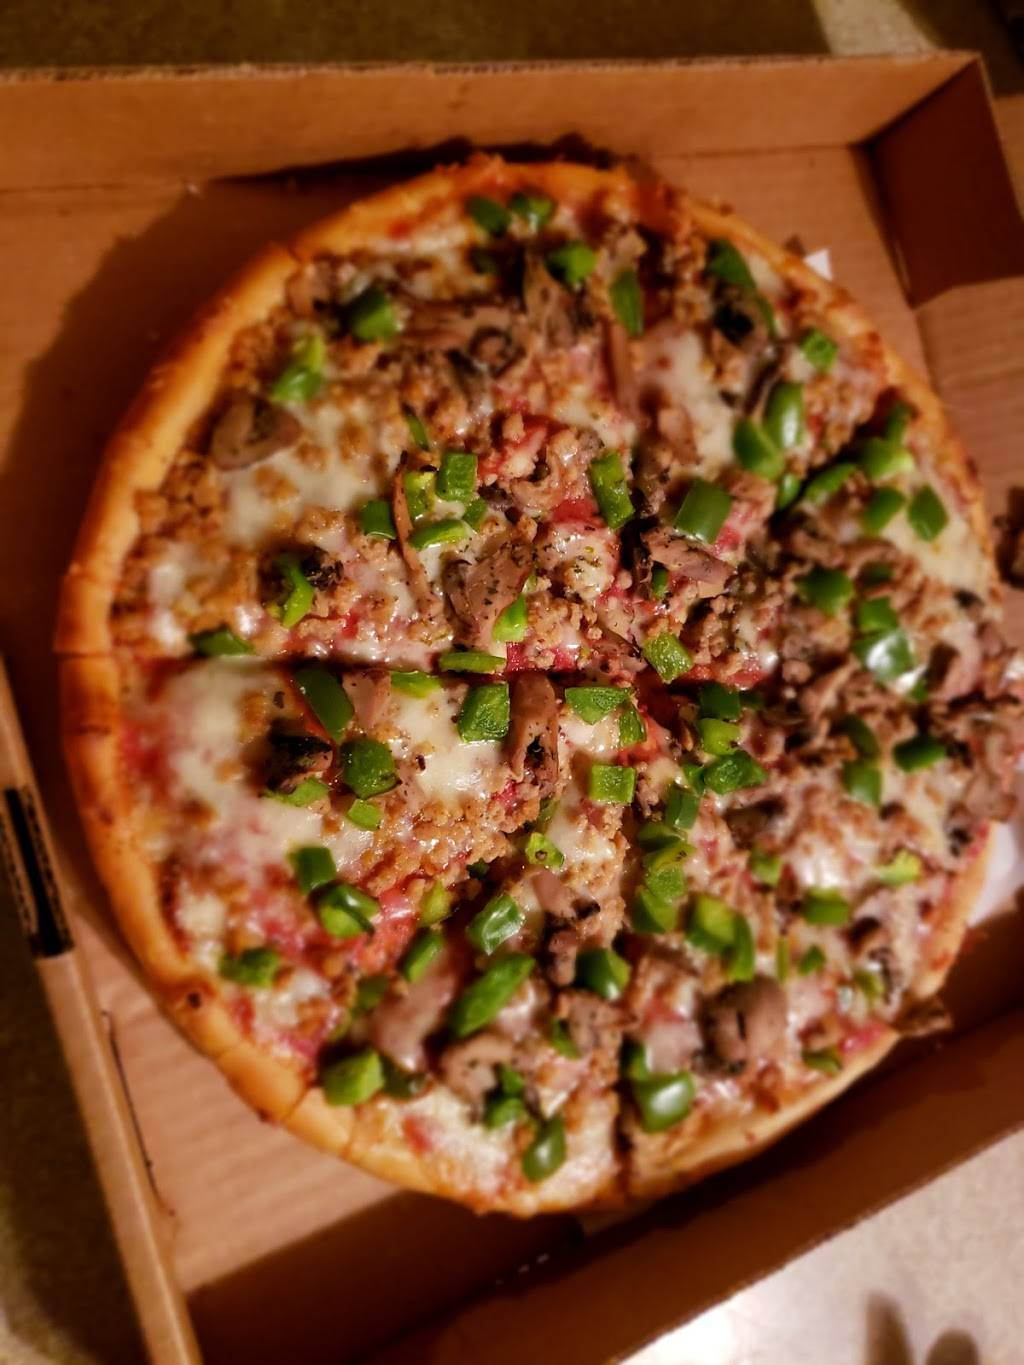 Big Star Pizza | restaurant | 1372 S Cleveland Massillon Rd, Akron, OH 44321, USA | 3306660700 OR +1 330-666-0700